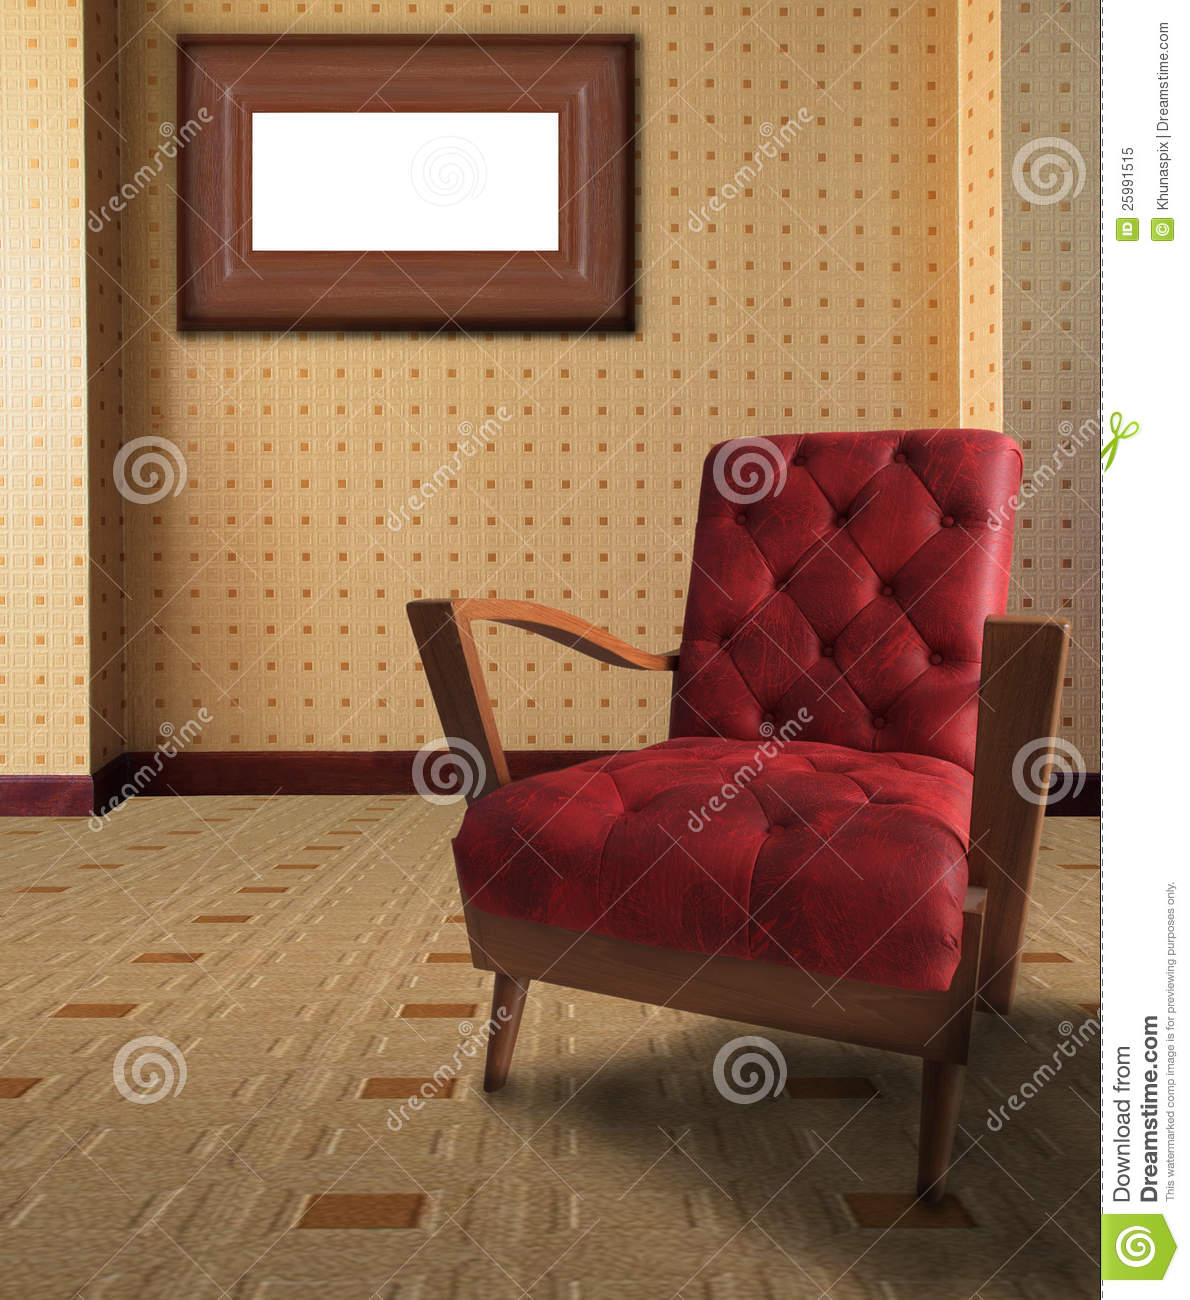 red chair living room room with chair and picture frame stock photography 14242